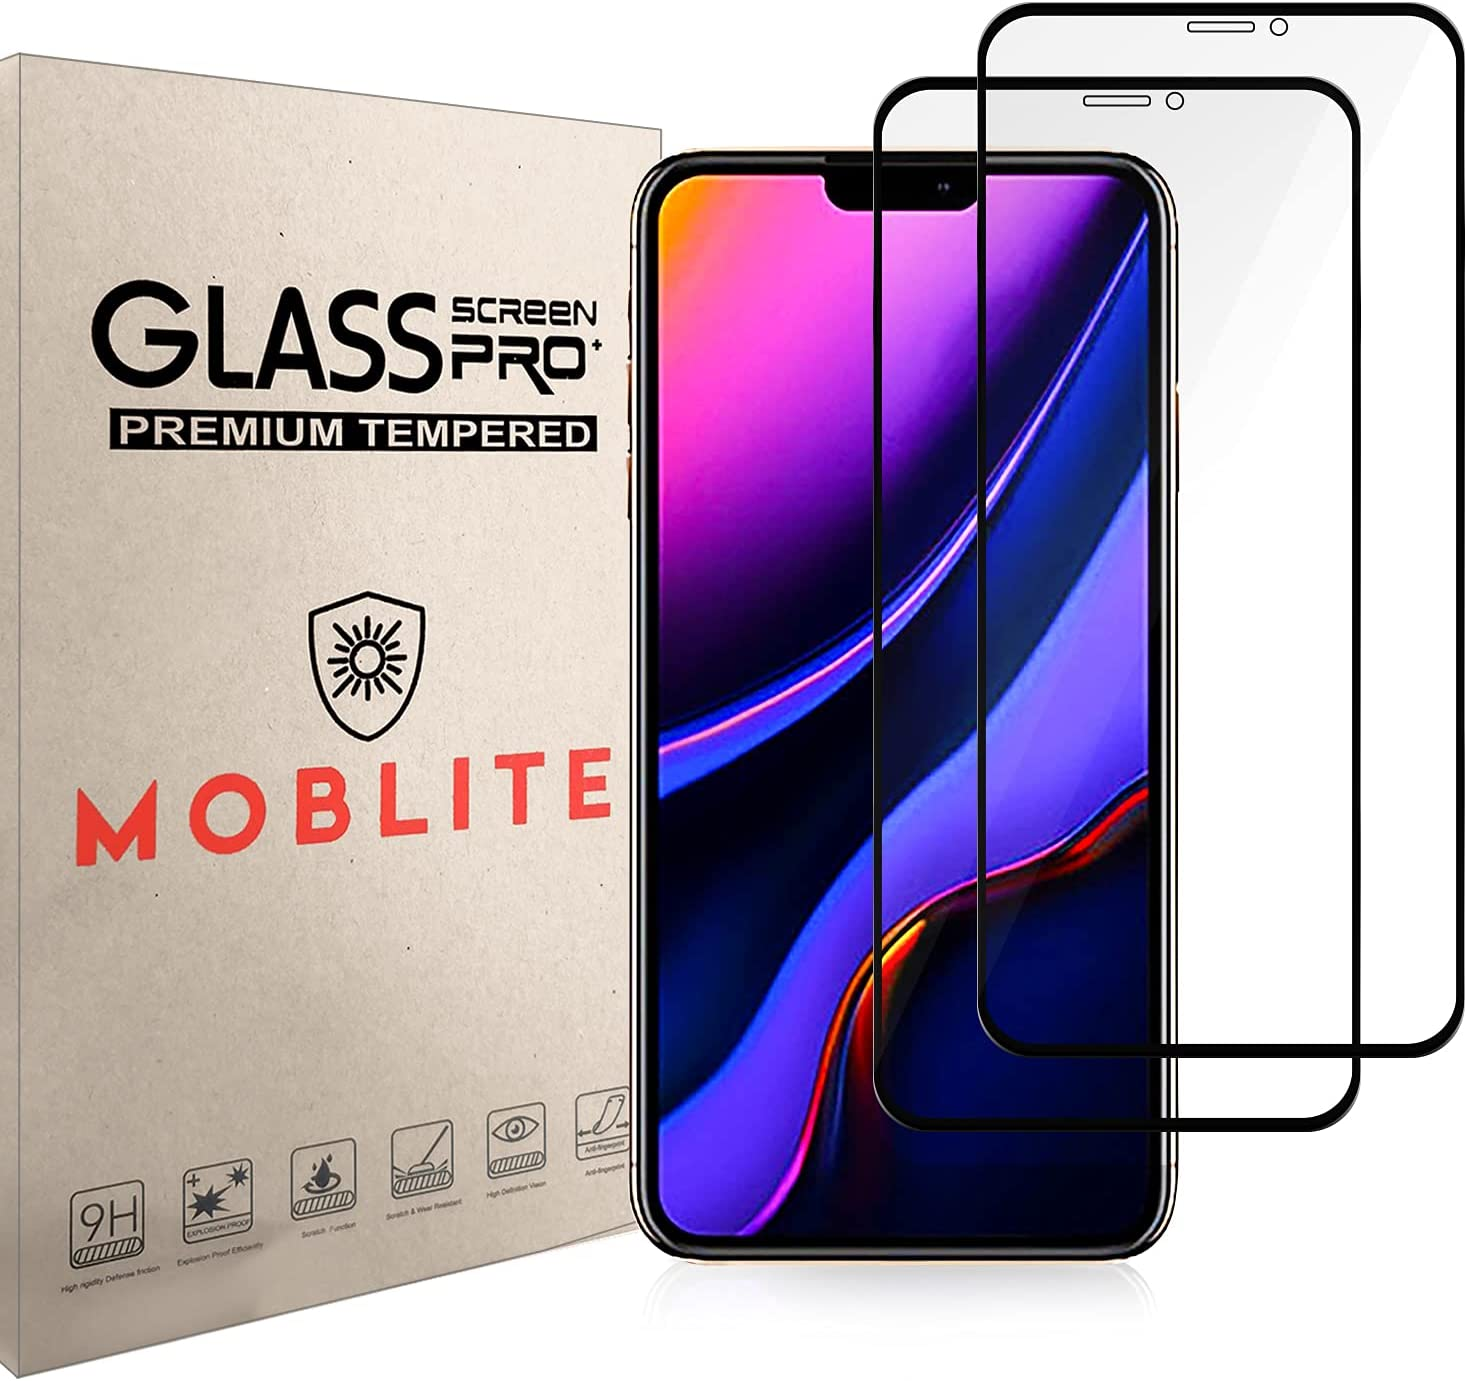 MOBLITE Compatible with iPhone 11 price Pro inch Manufacturer direct delivery 2ps 6.5 Max Tempe